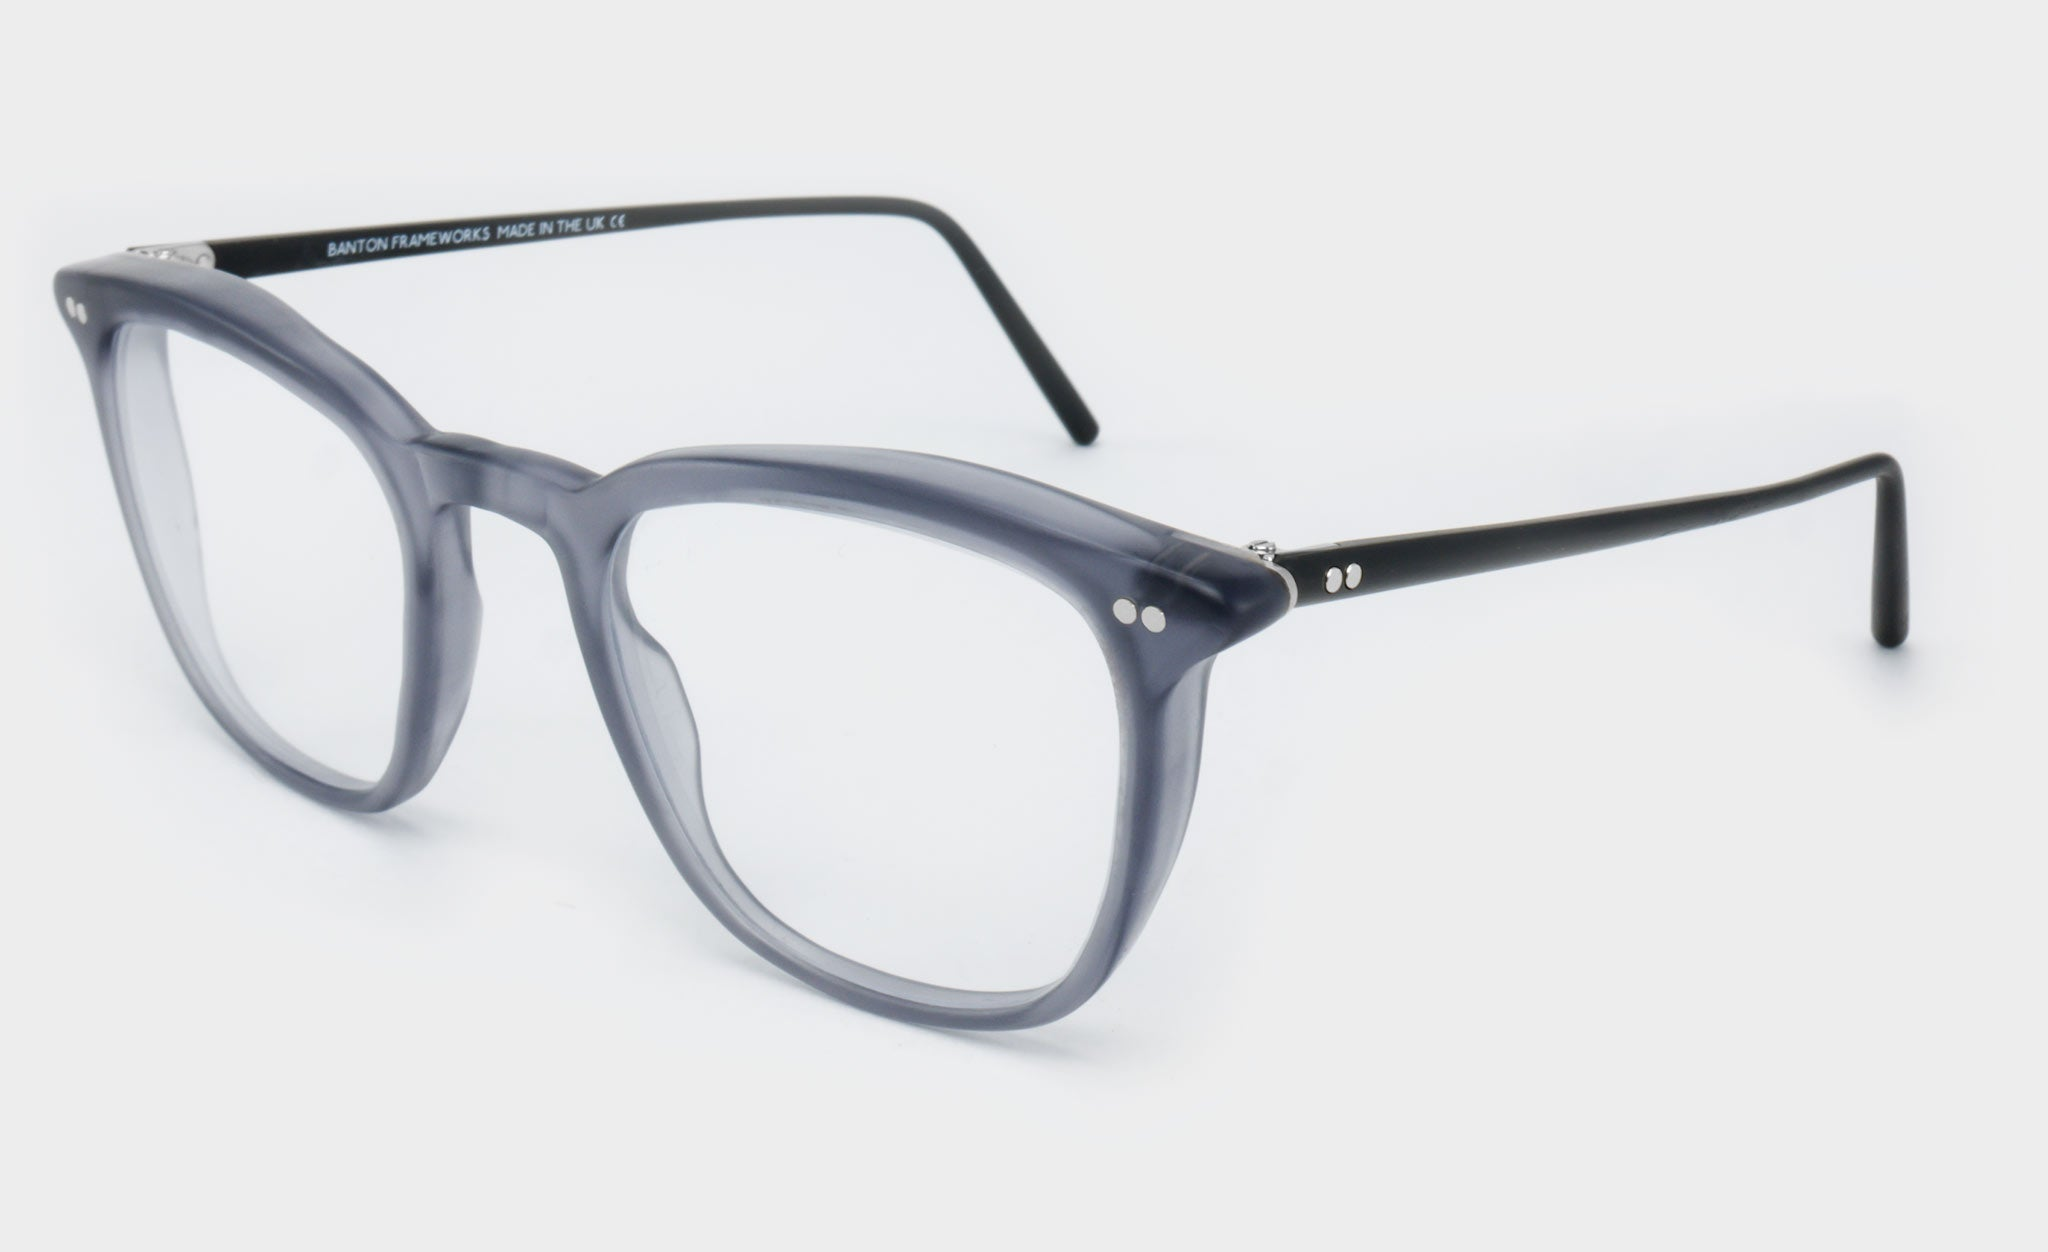 Mens-Large-Rounded-Square-Grey-Glasses-Frame-Side-View